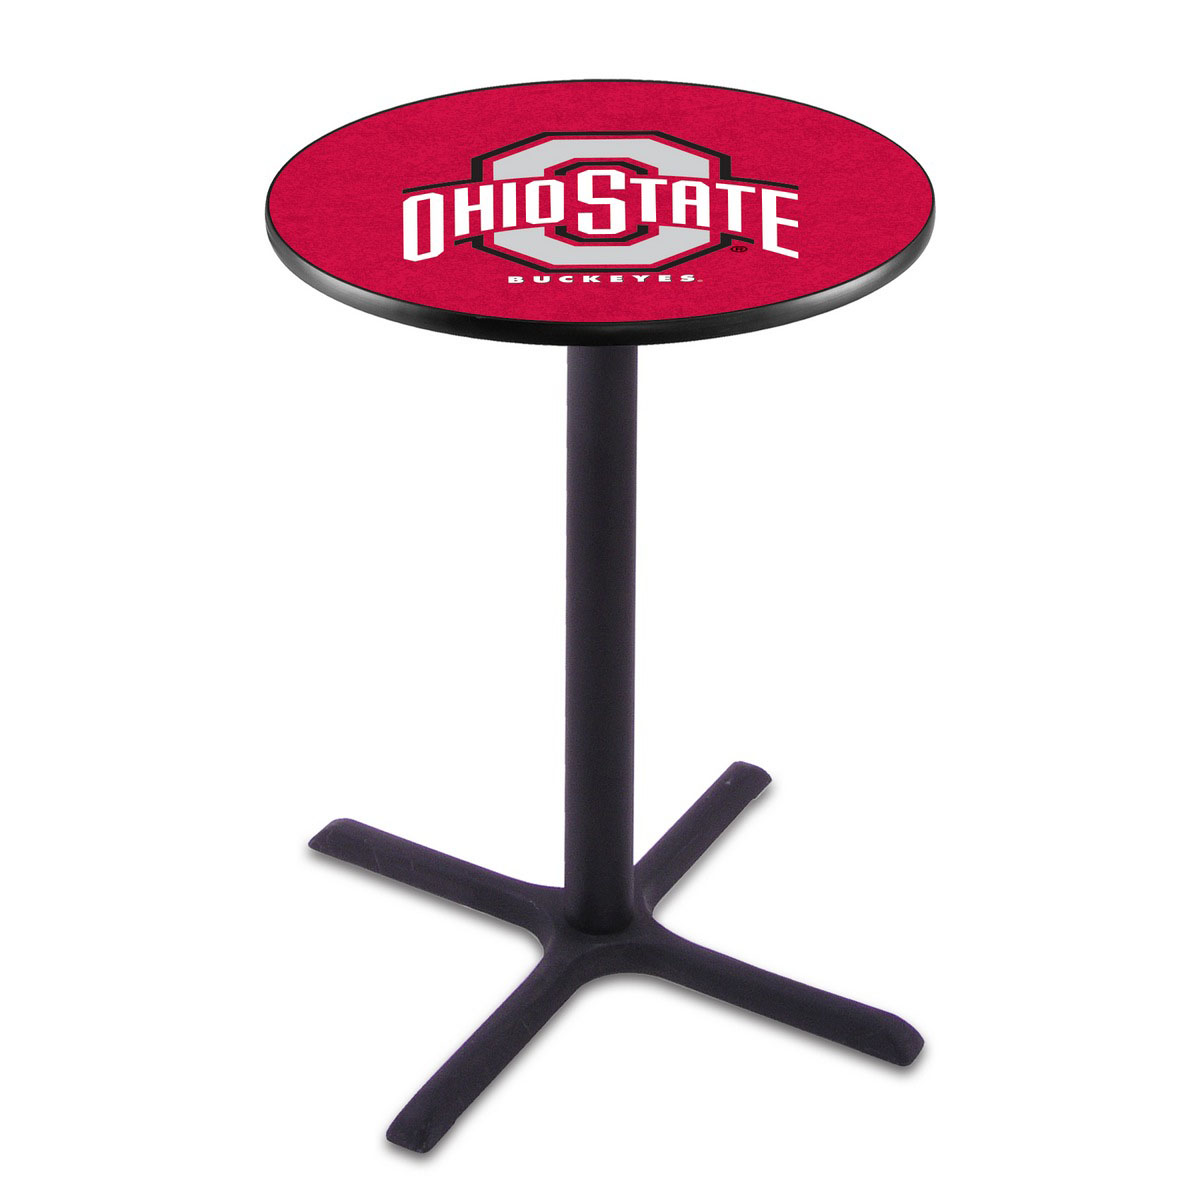 Amazing Ohio State Wrinkle Pub Table Product Photo